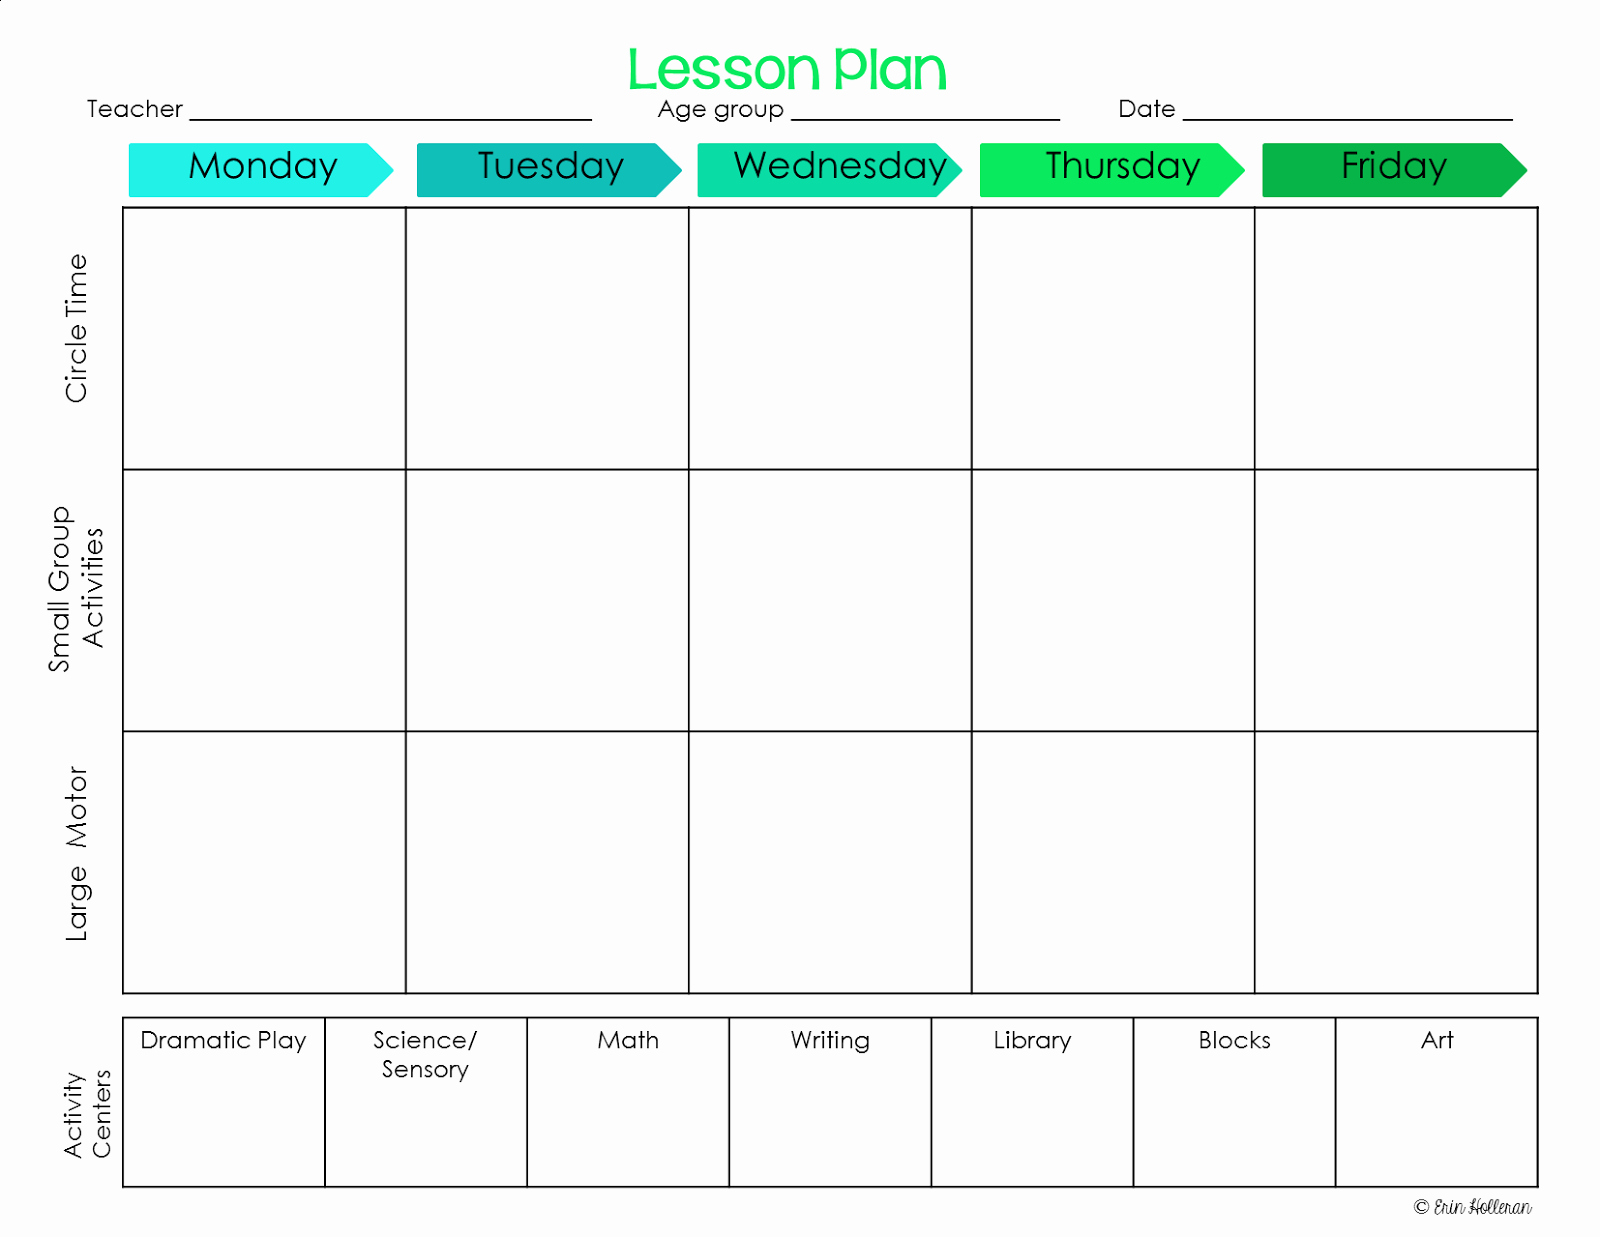 Standard Based Lesson Plan Template Luxury All About Teaching Preschool Great Ideas for Preschool Activities Standards Based Curriculum